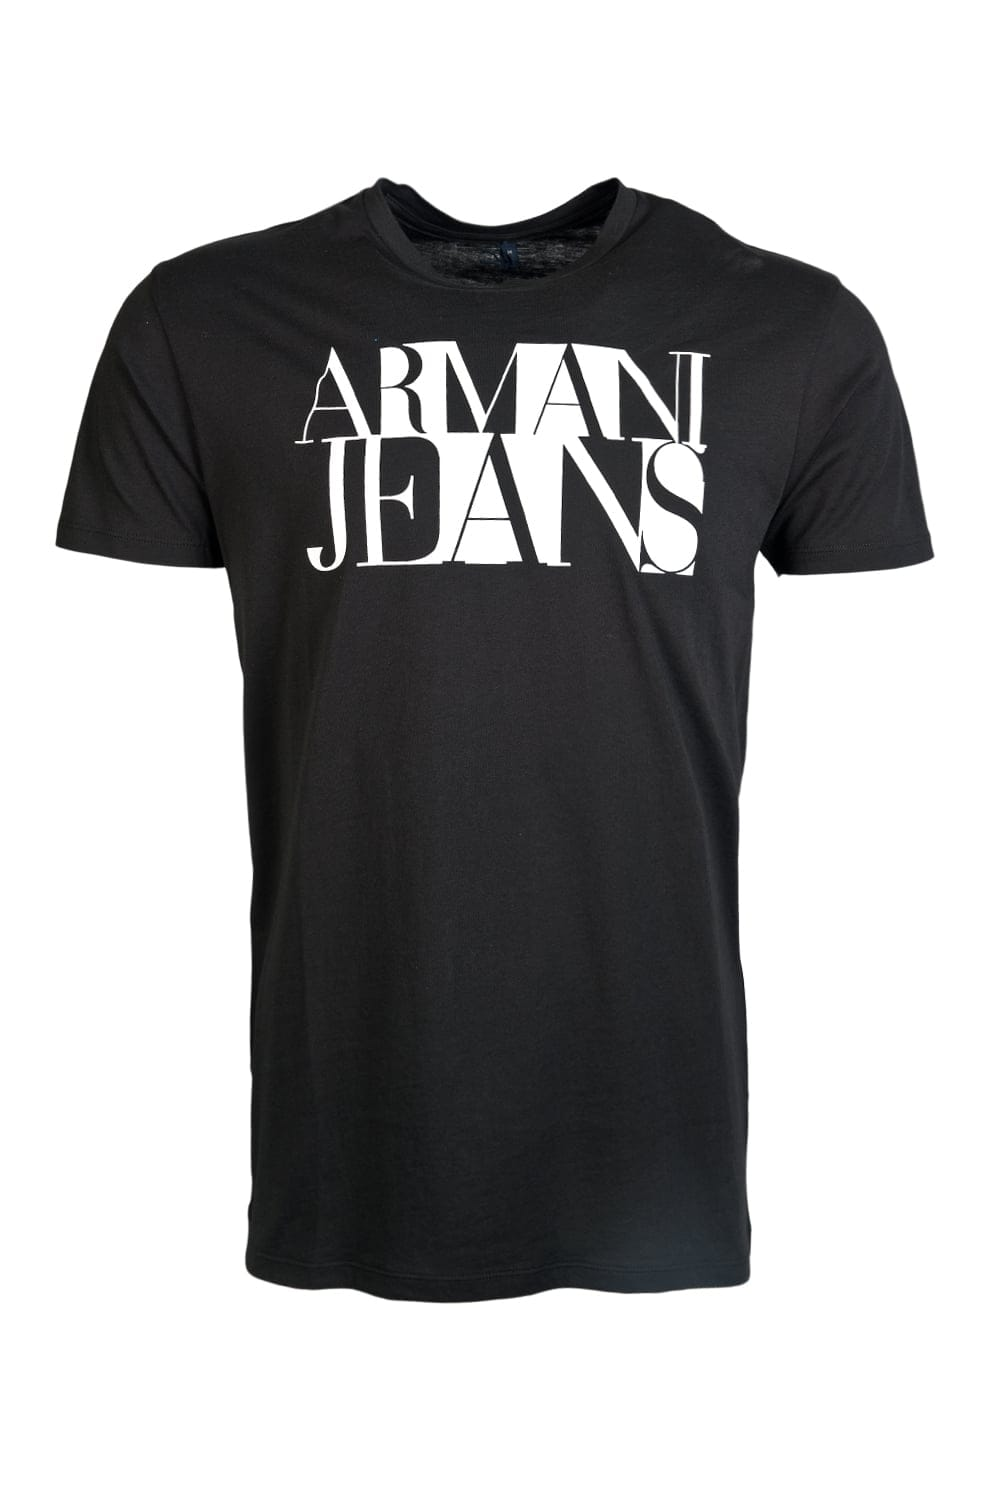 home clothing t shirts armani armani jeans t shirt c6h72ff. Black Bedroom Furniture Sets. Home Design Ideas